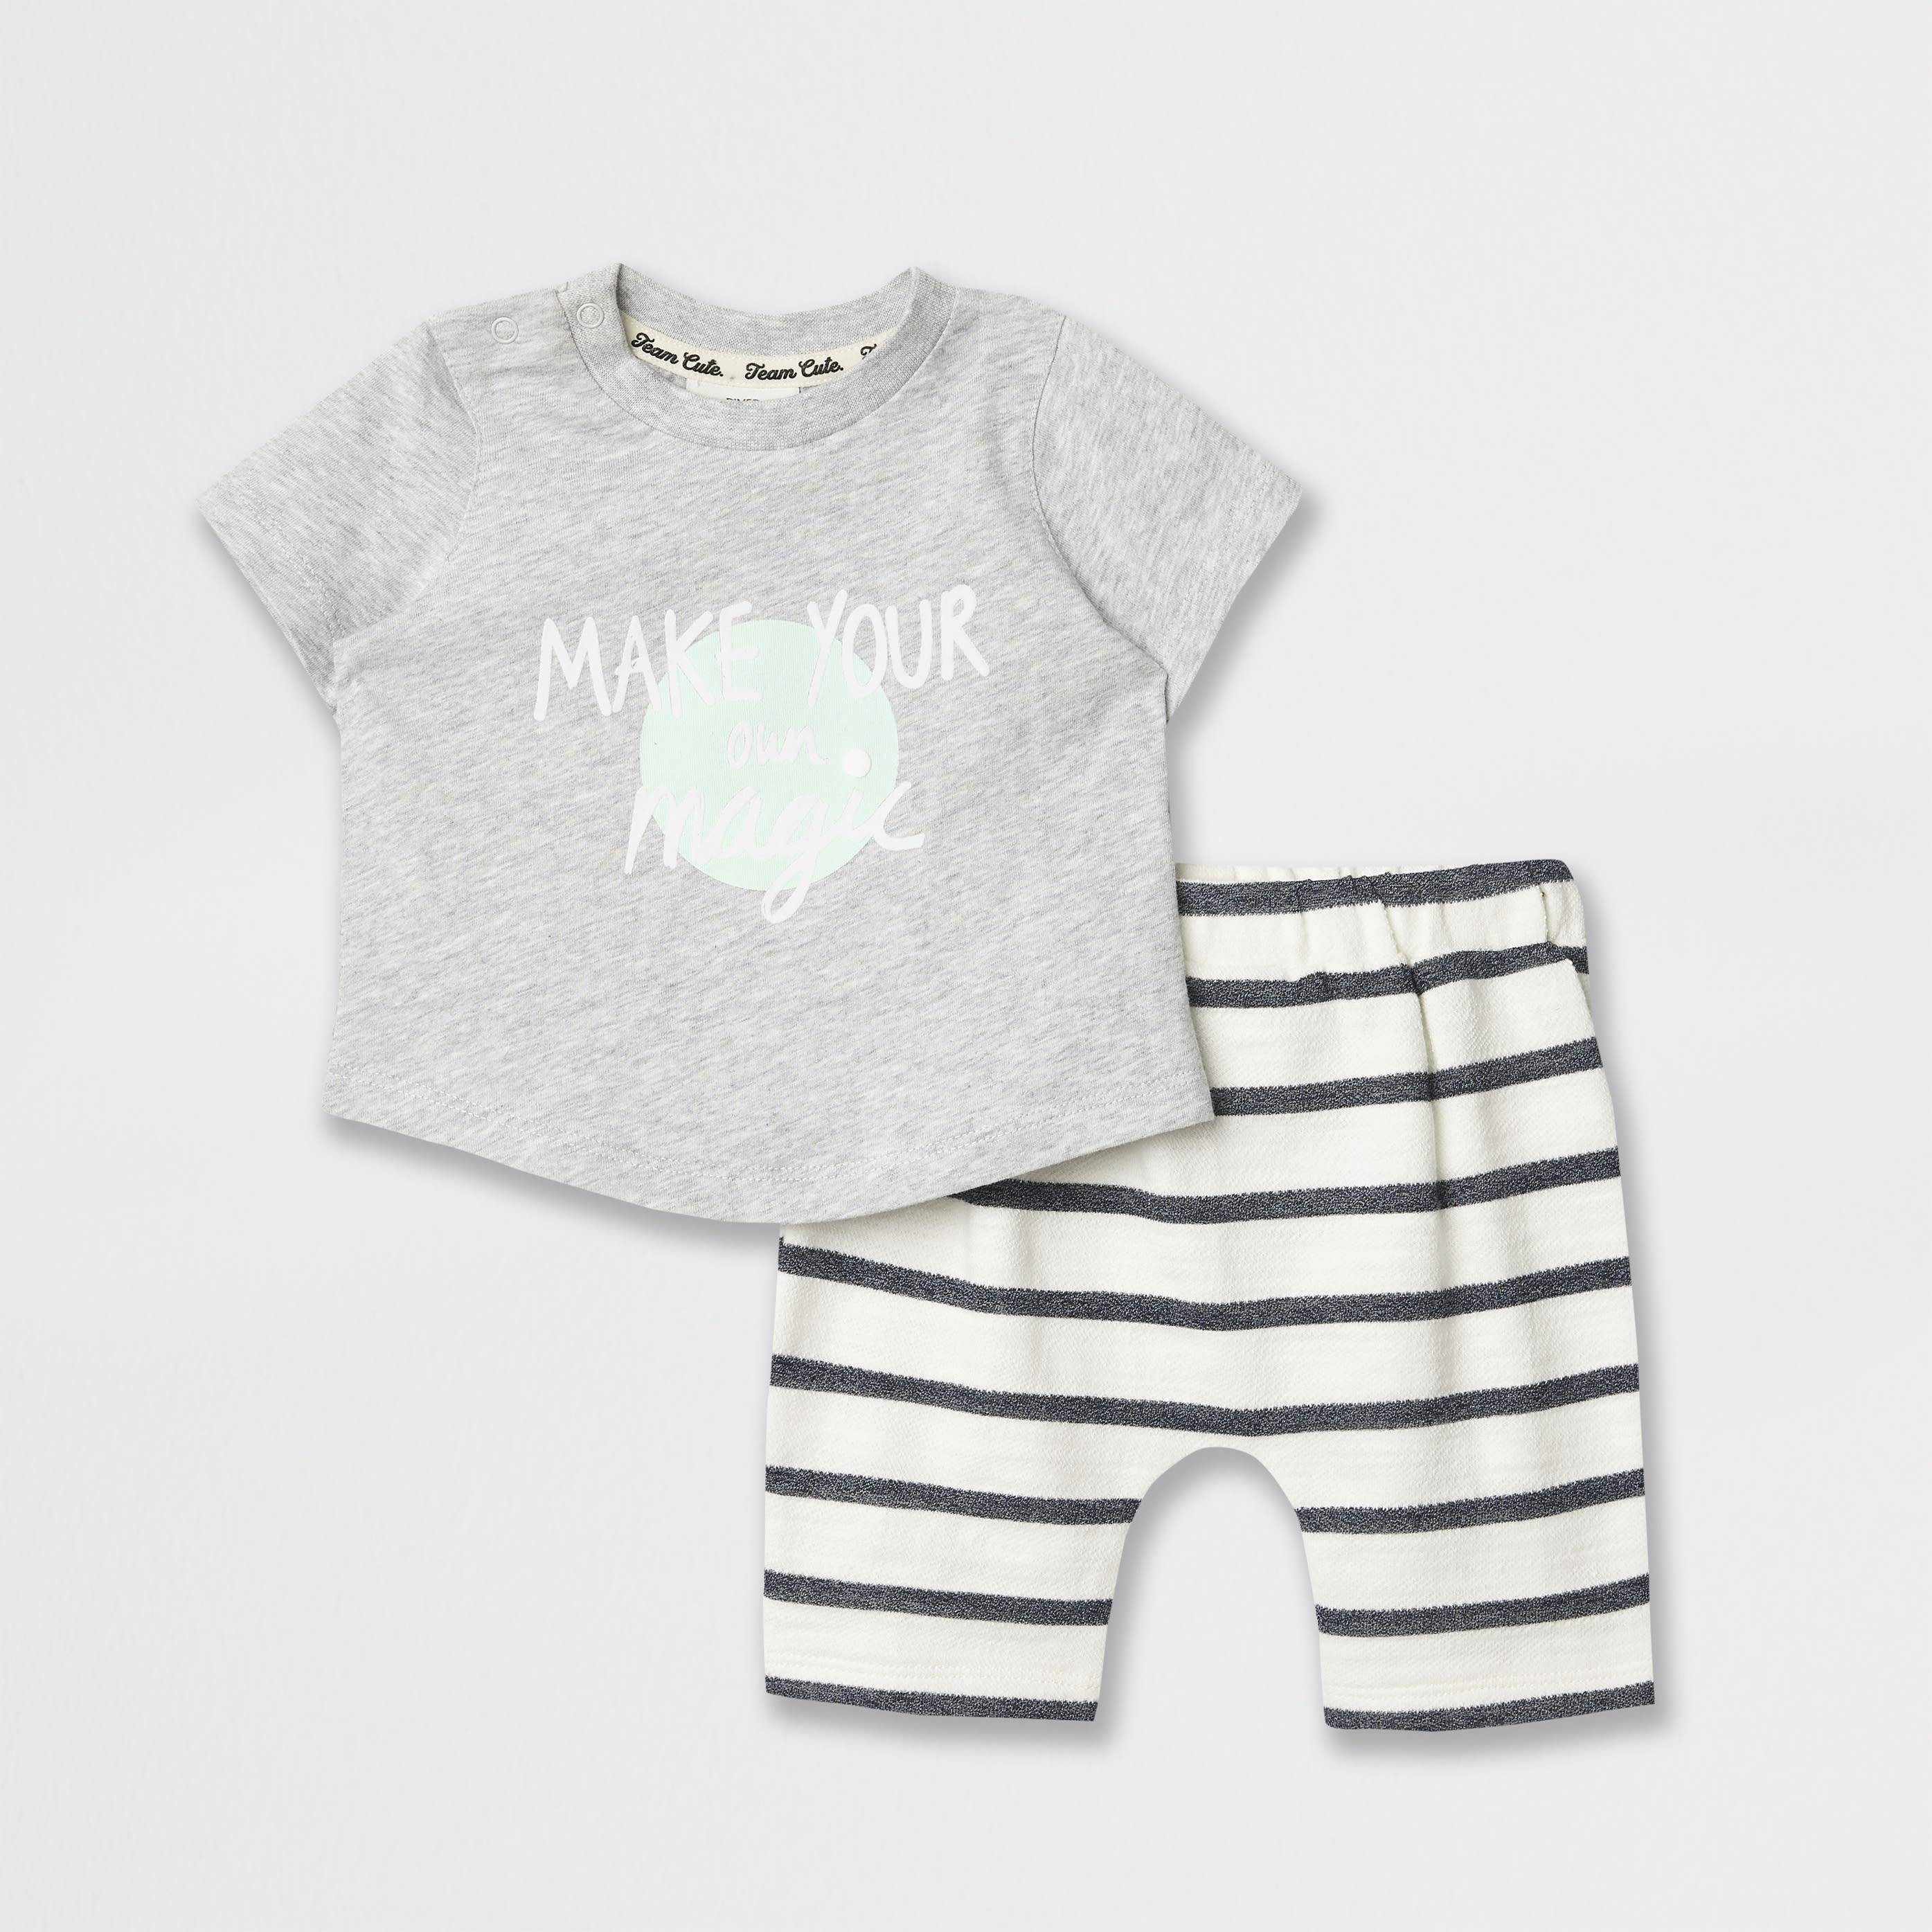 River Island Baby Grey graphic print T-shirt outfit (0-3 Mths)